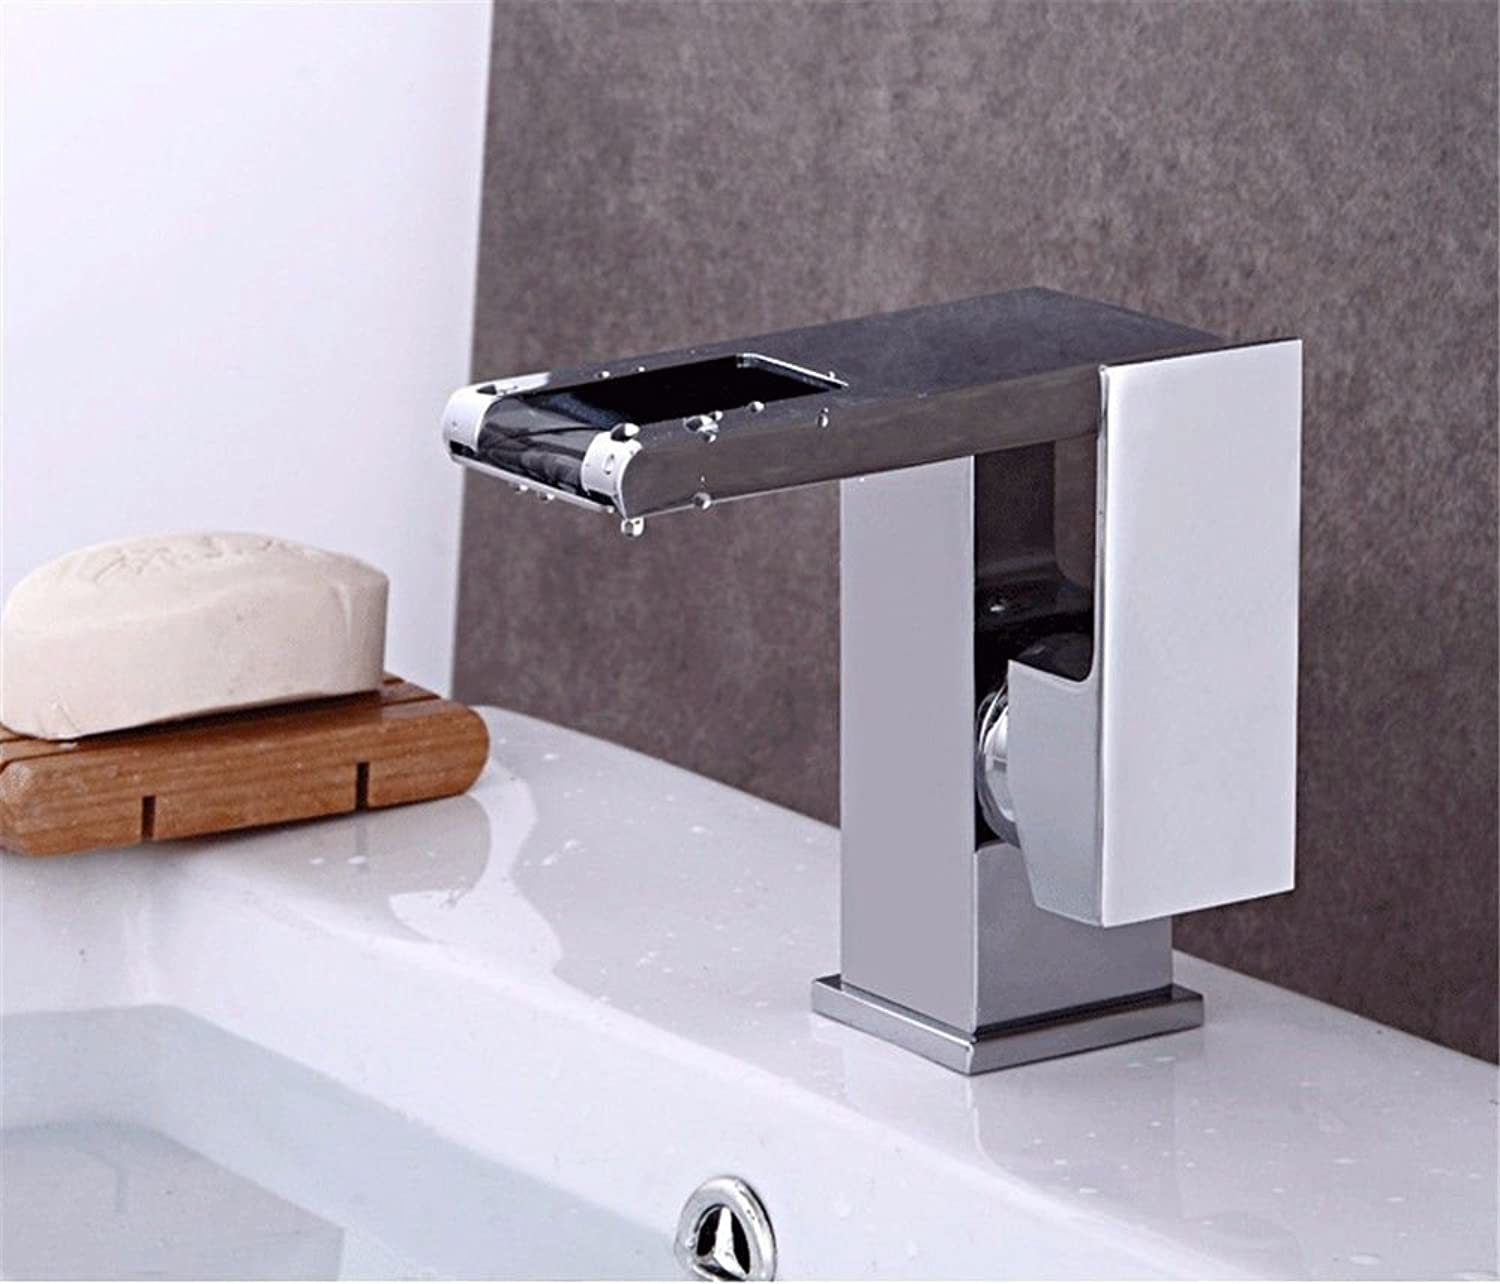 Hlluya Professional Sink Mixer Tap Kitchen Faucet Stainless Steel Basin waterfall of hot and cold water washing your face hand basin basin Mixer Taps